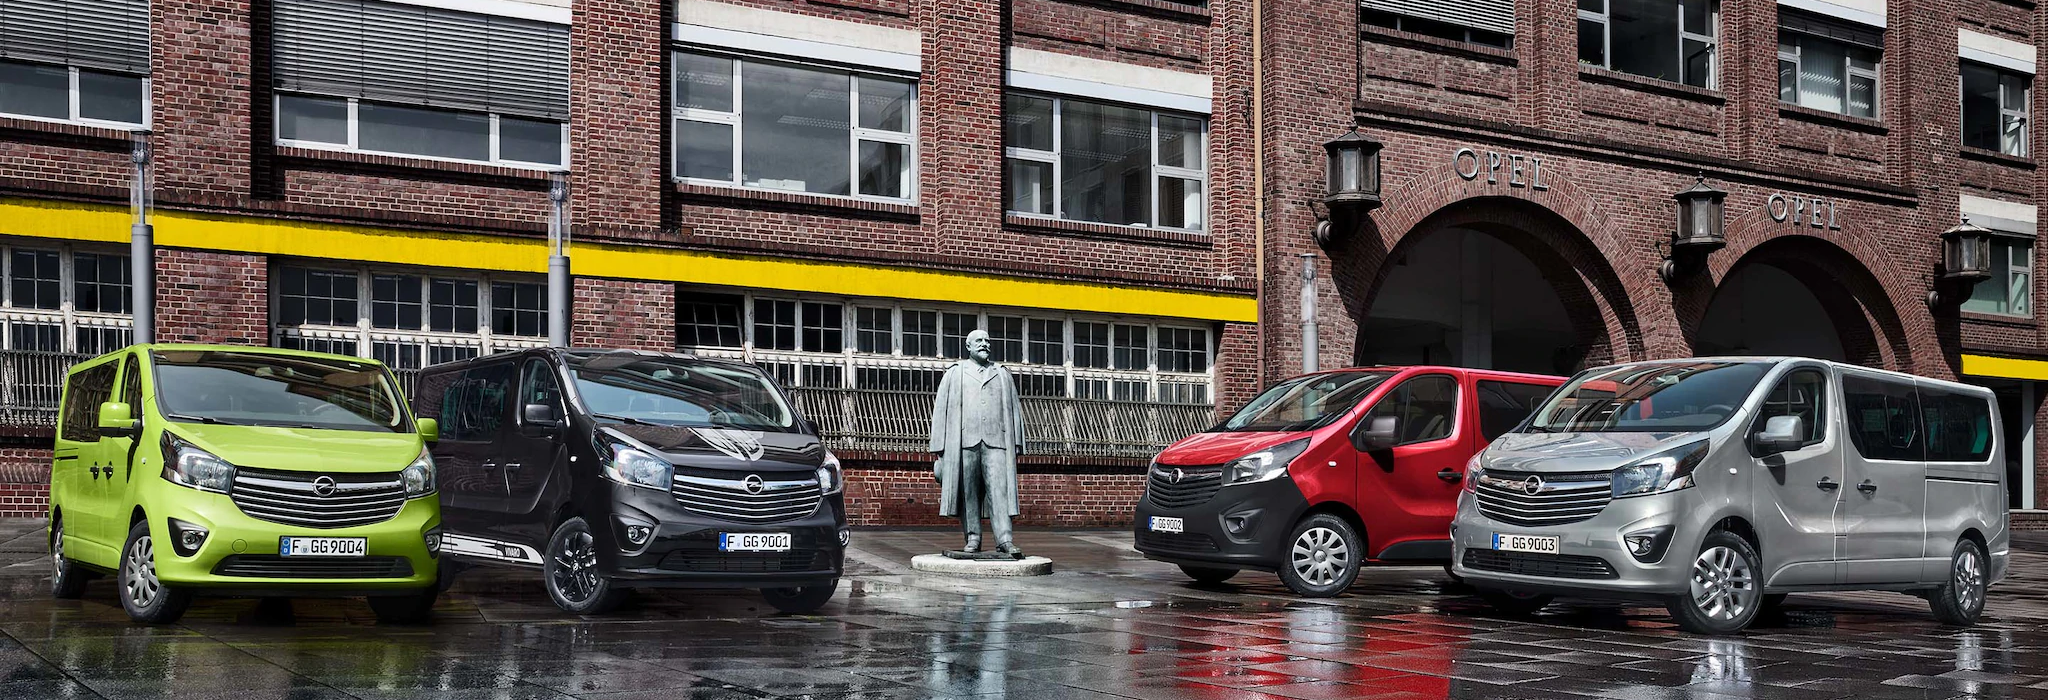 Opel_Vivaro_Tourer_Colors_21x9_vip18_e01_103